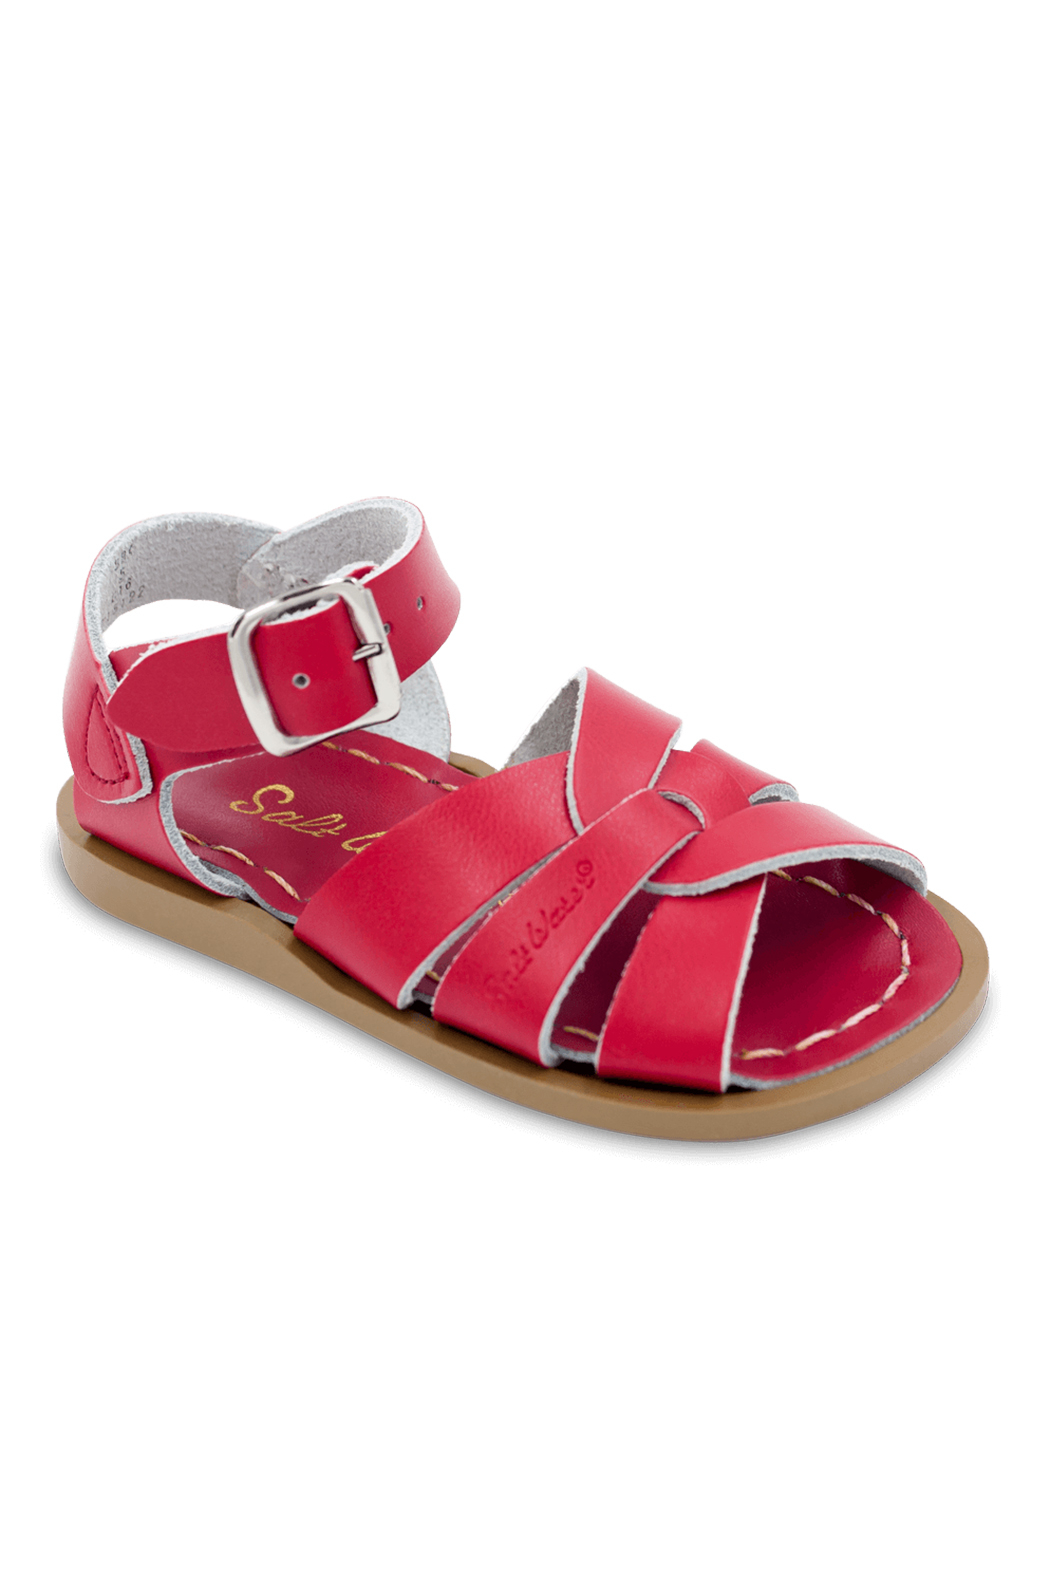 Hoy Shoes Salt Water Sandals Toddler/Little Kids - Front Cropped Image